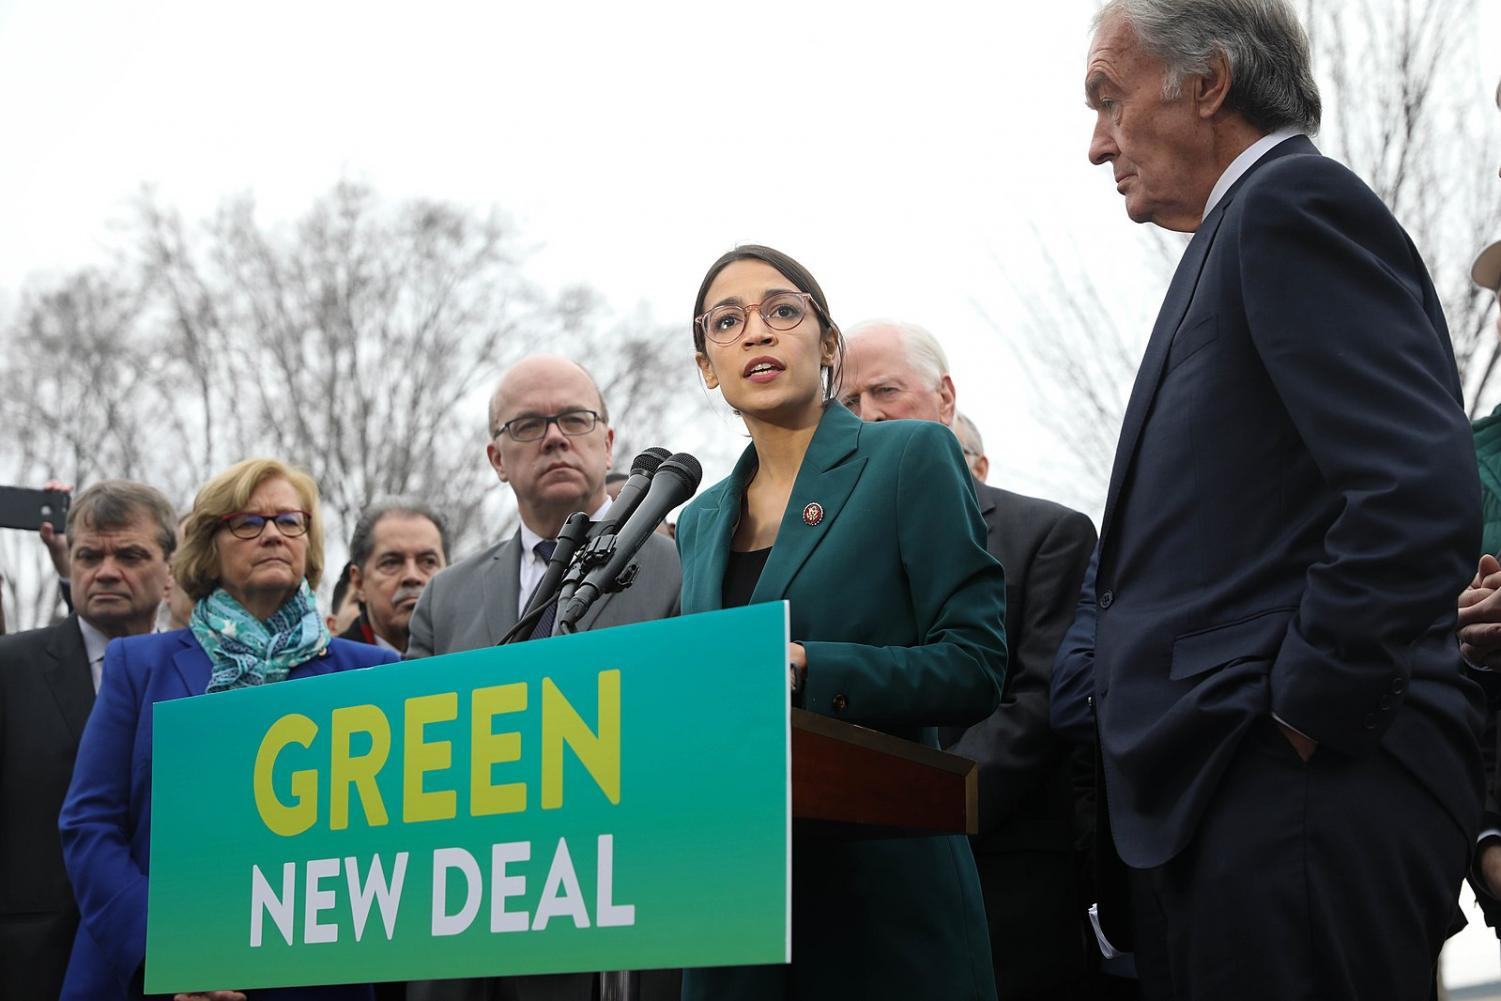 Rep. Alexandria Ocasio-Cortez, D-N.Y. (center) and Sen. Ed Markey, D-Mass. (far right) give a press release on their new resolution, the Green New Deal. The proposal's name is modeled after former president Franklin Delano Roosevelt's